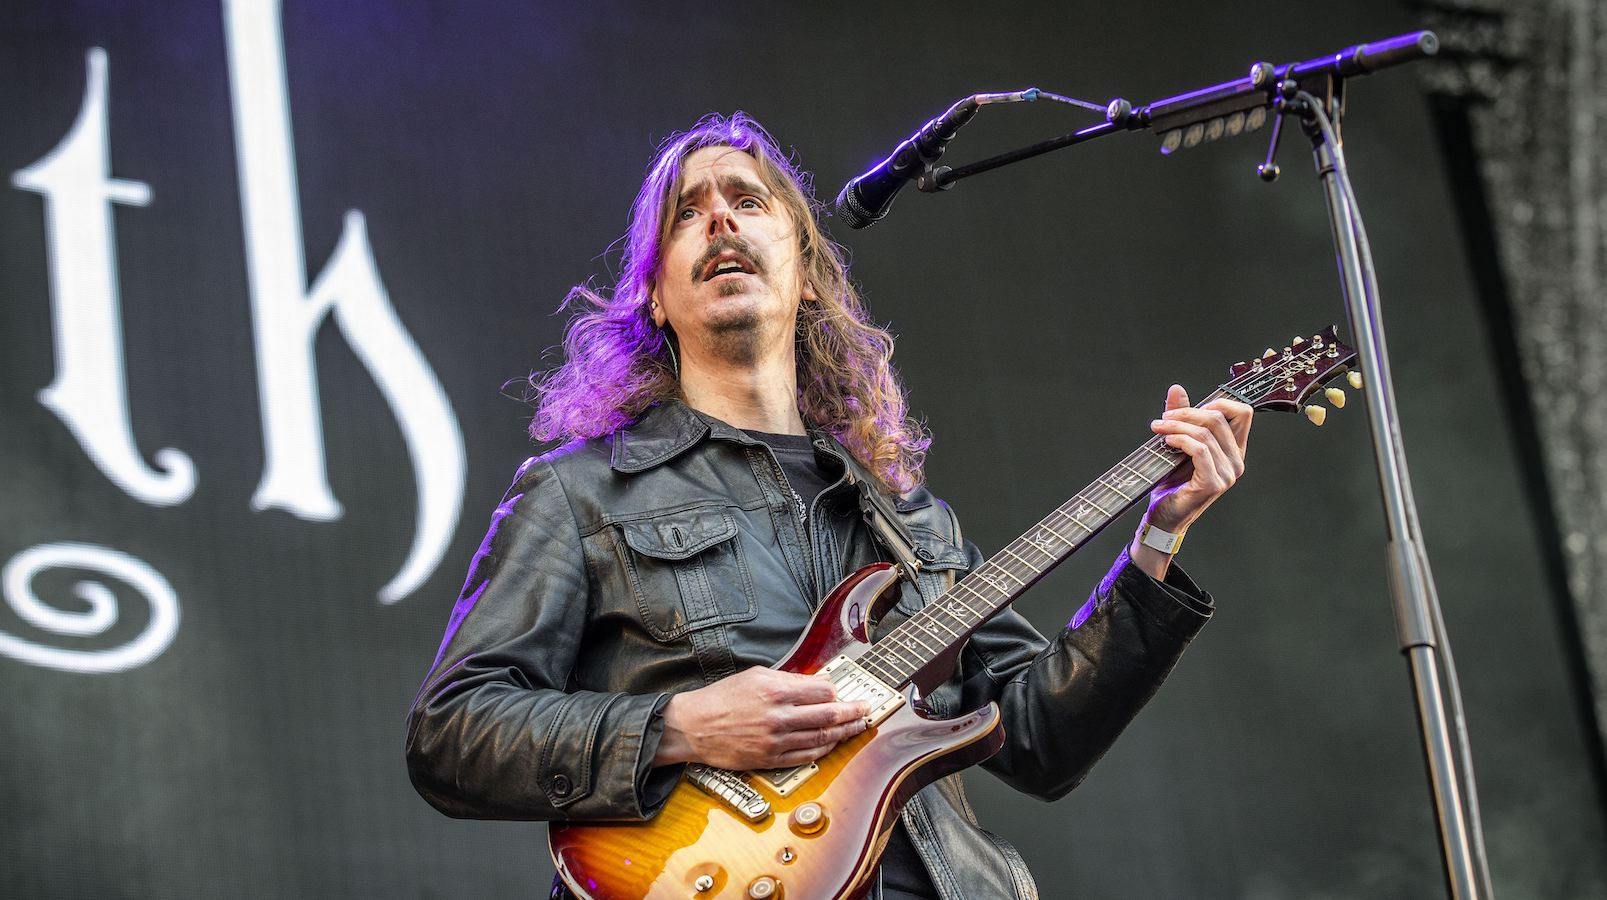 """Hear Opeth Unleash Heavy Prog-Metal Workout on New Song """"Heart in Hand"""""""